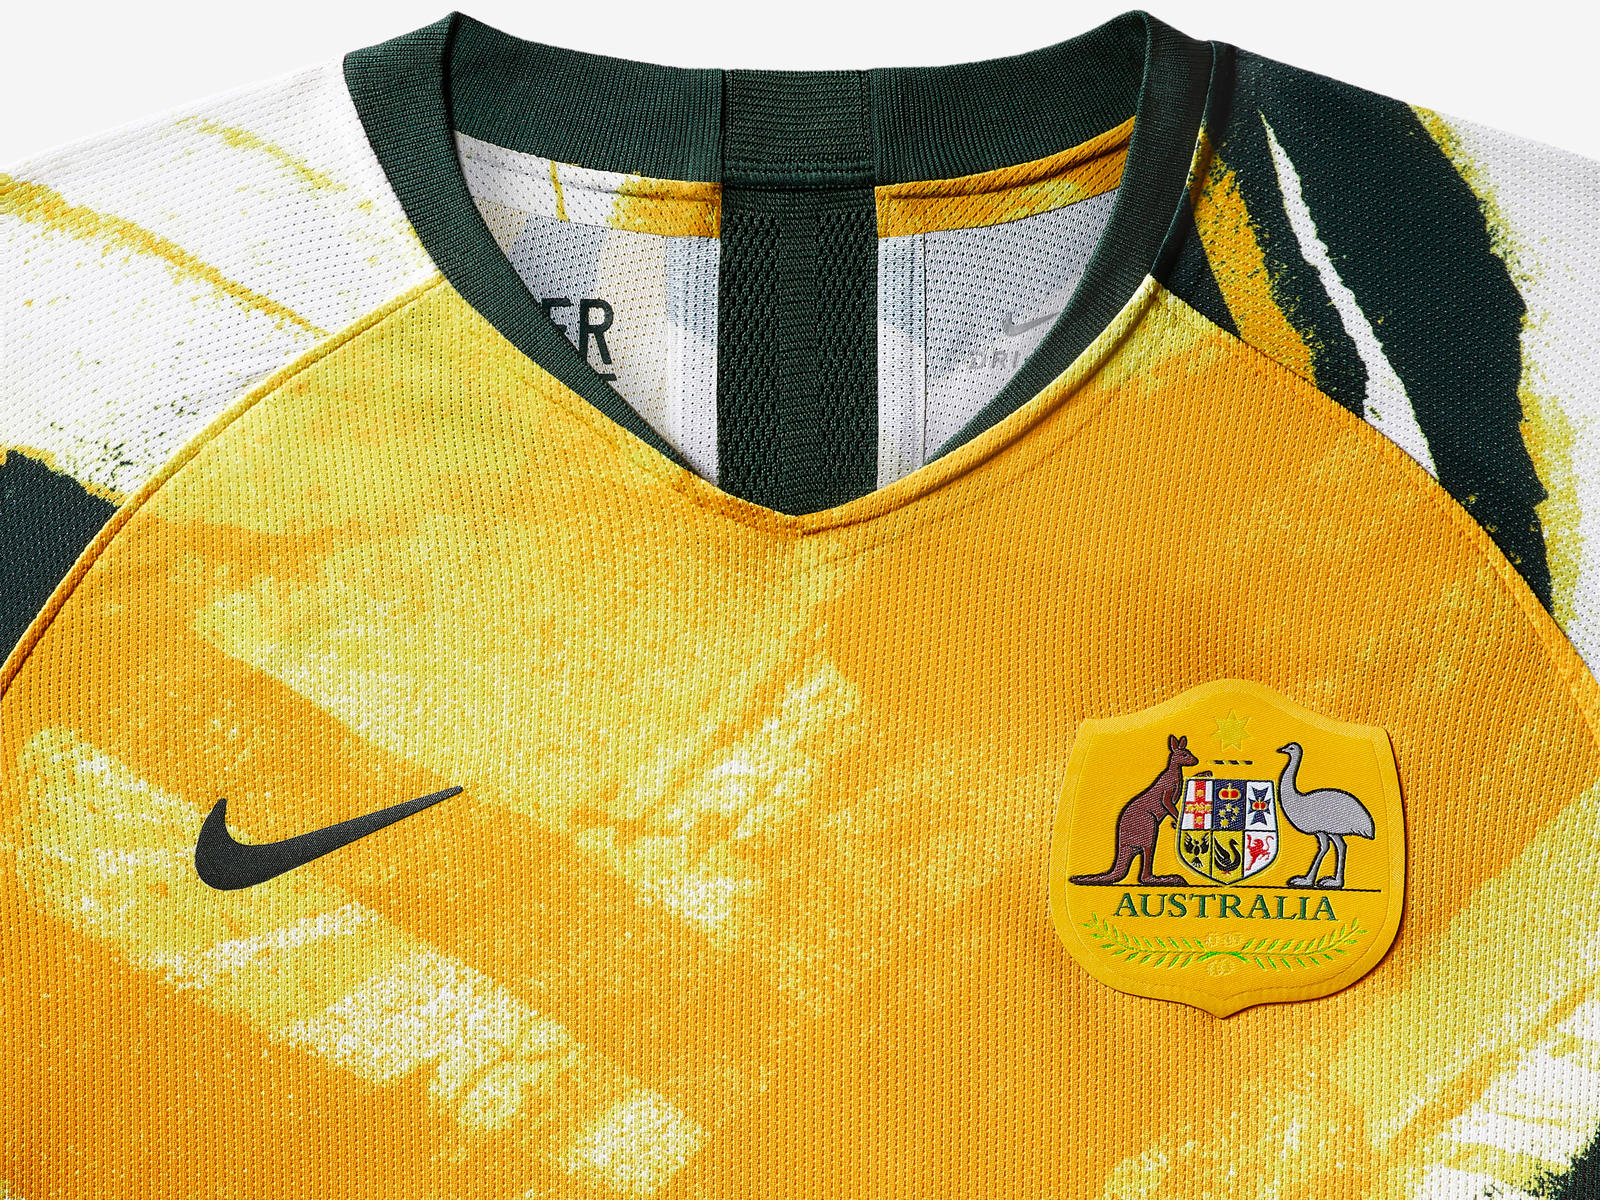 australia-national-team-kit-2019-laydown-3_85907.jpg